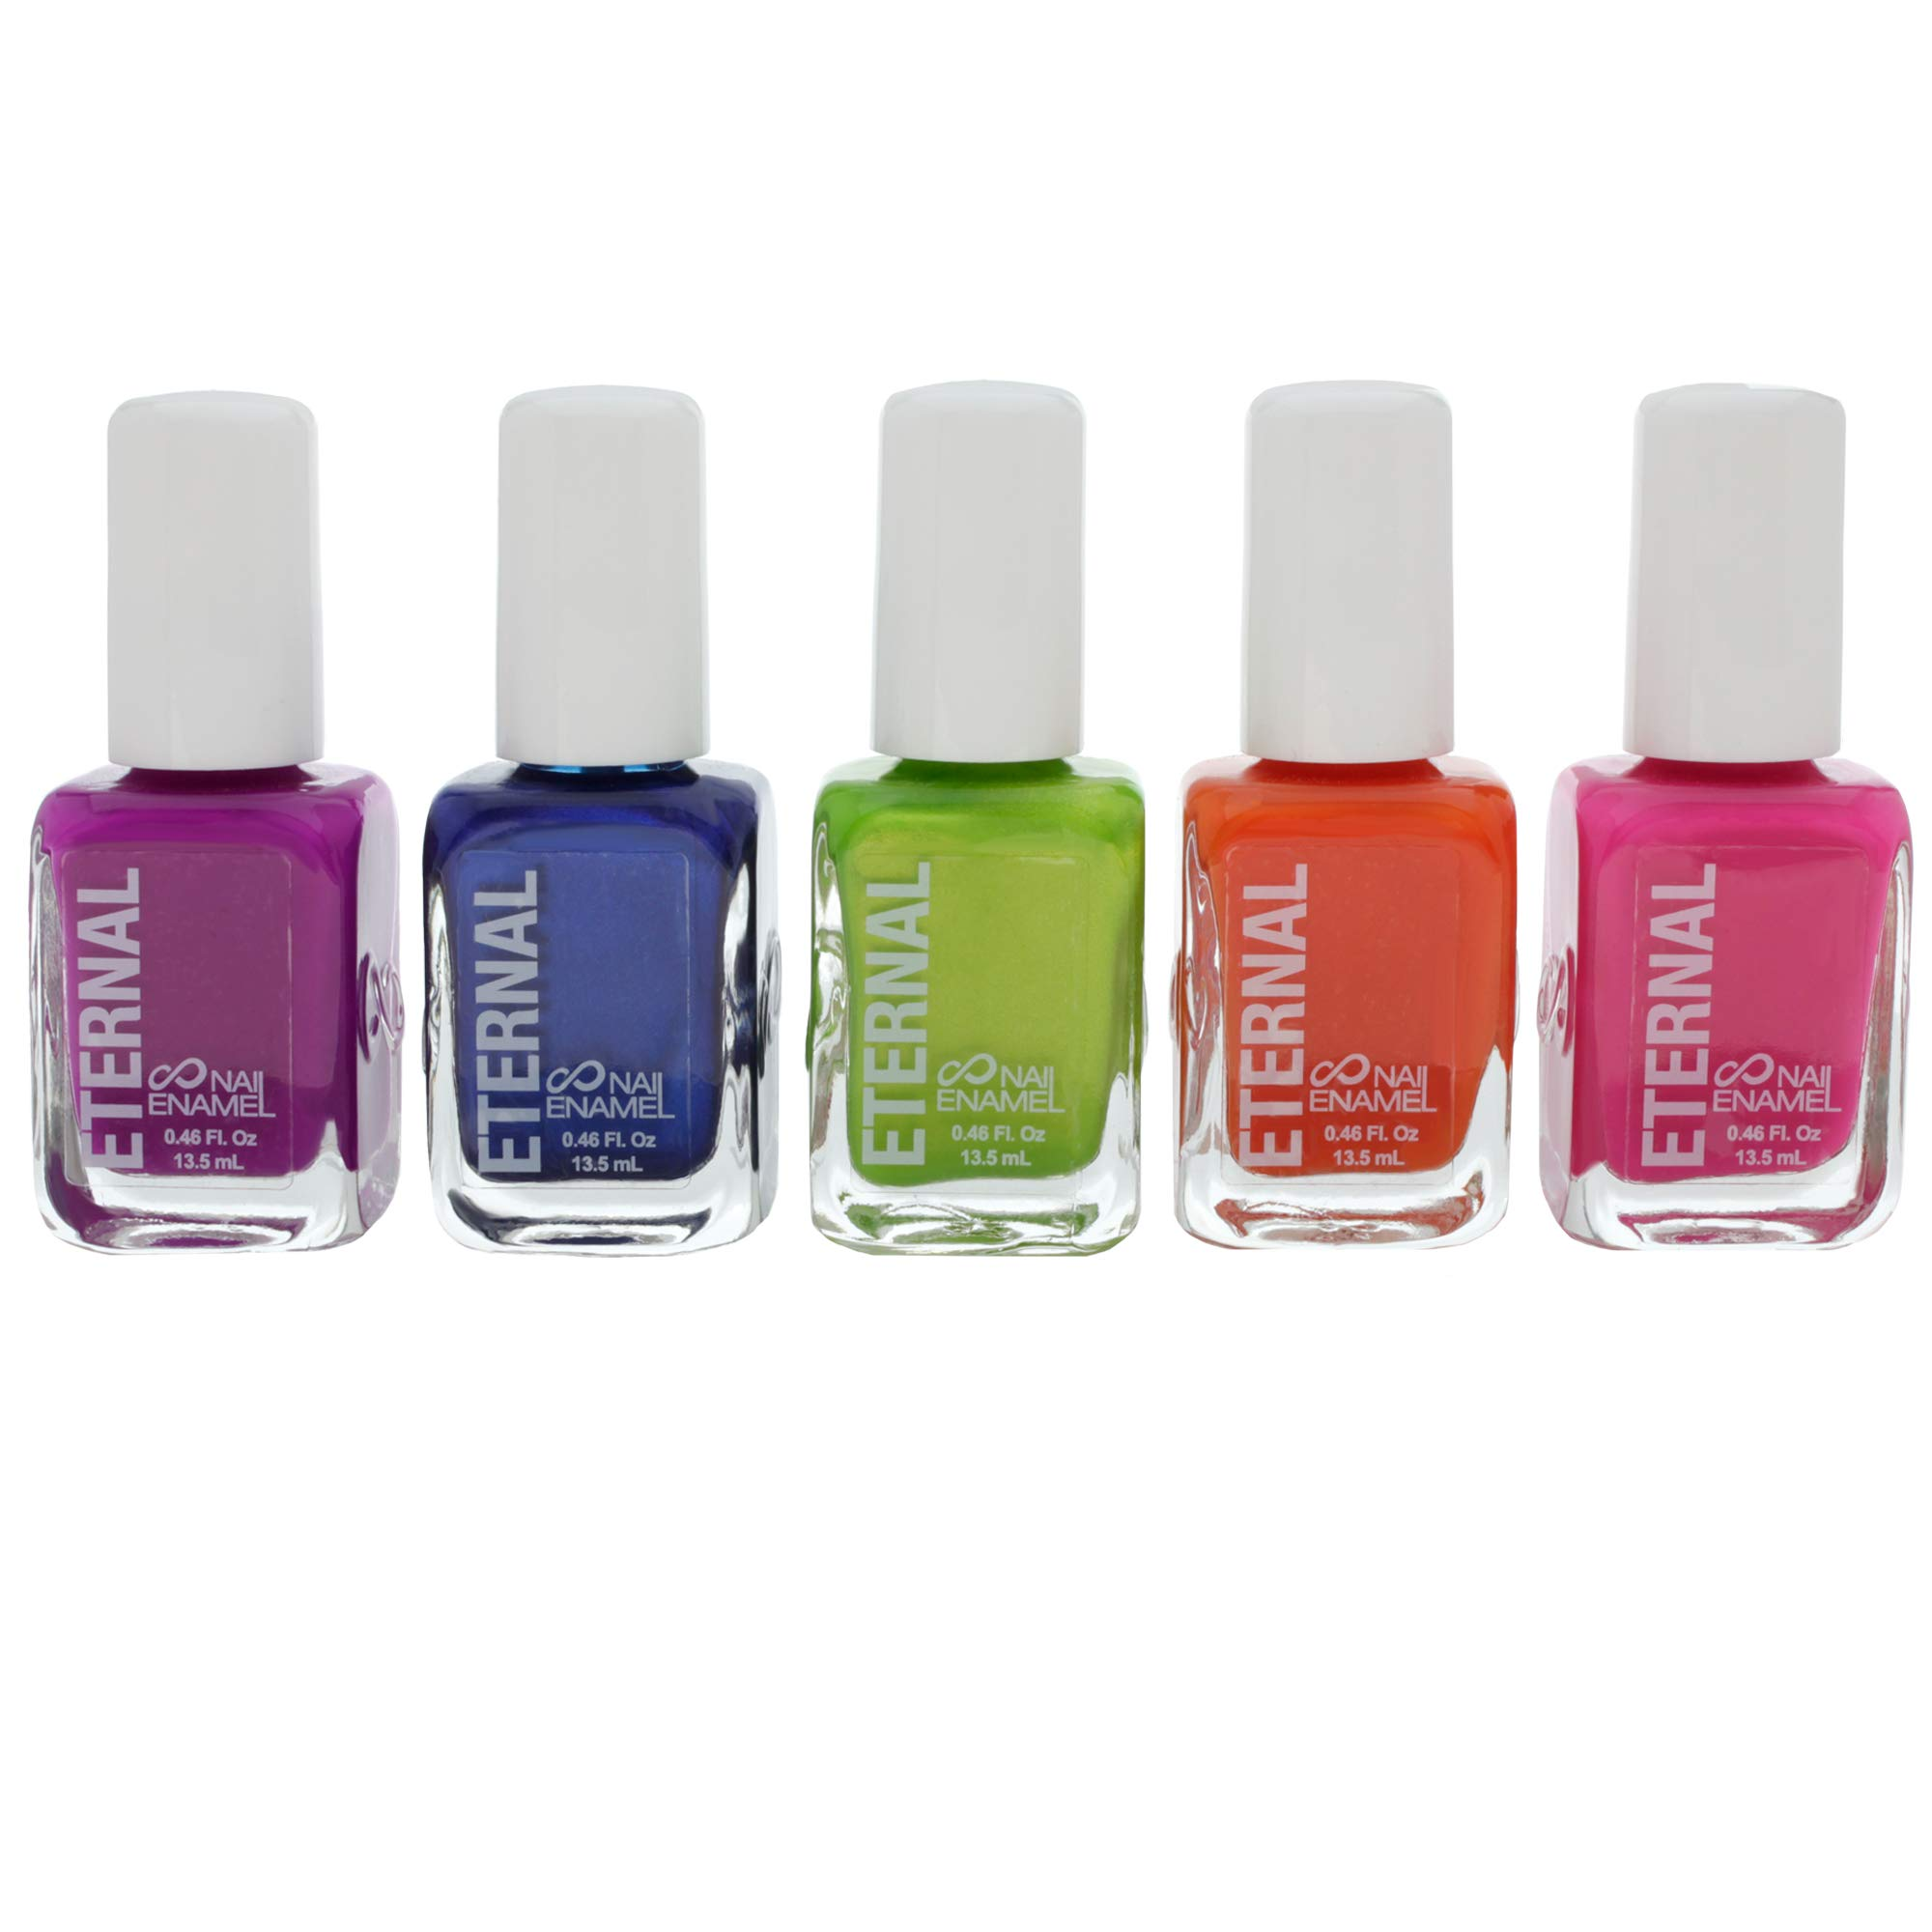 Eternal 5 Collection: Rainbow Days - 5 Pieces Set: Long Lasting, Quick Dry Nail Polish